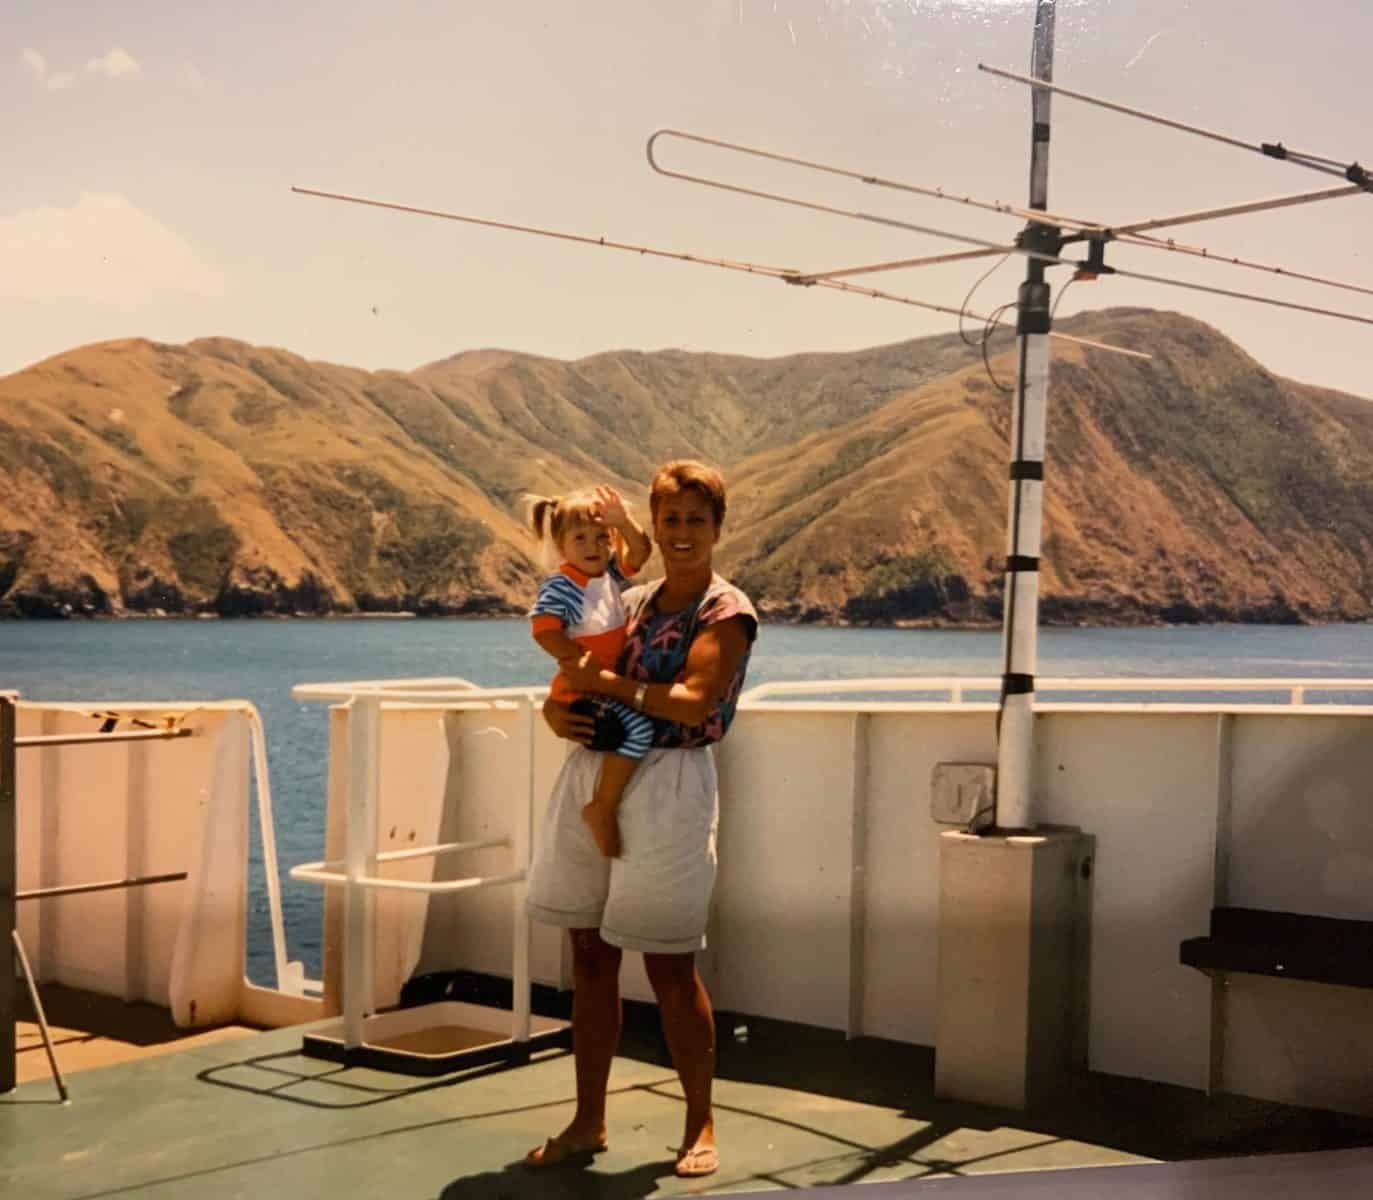 Old photo from The Interislander